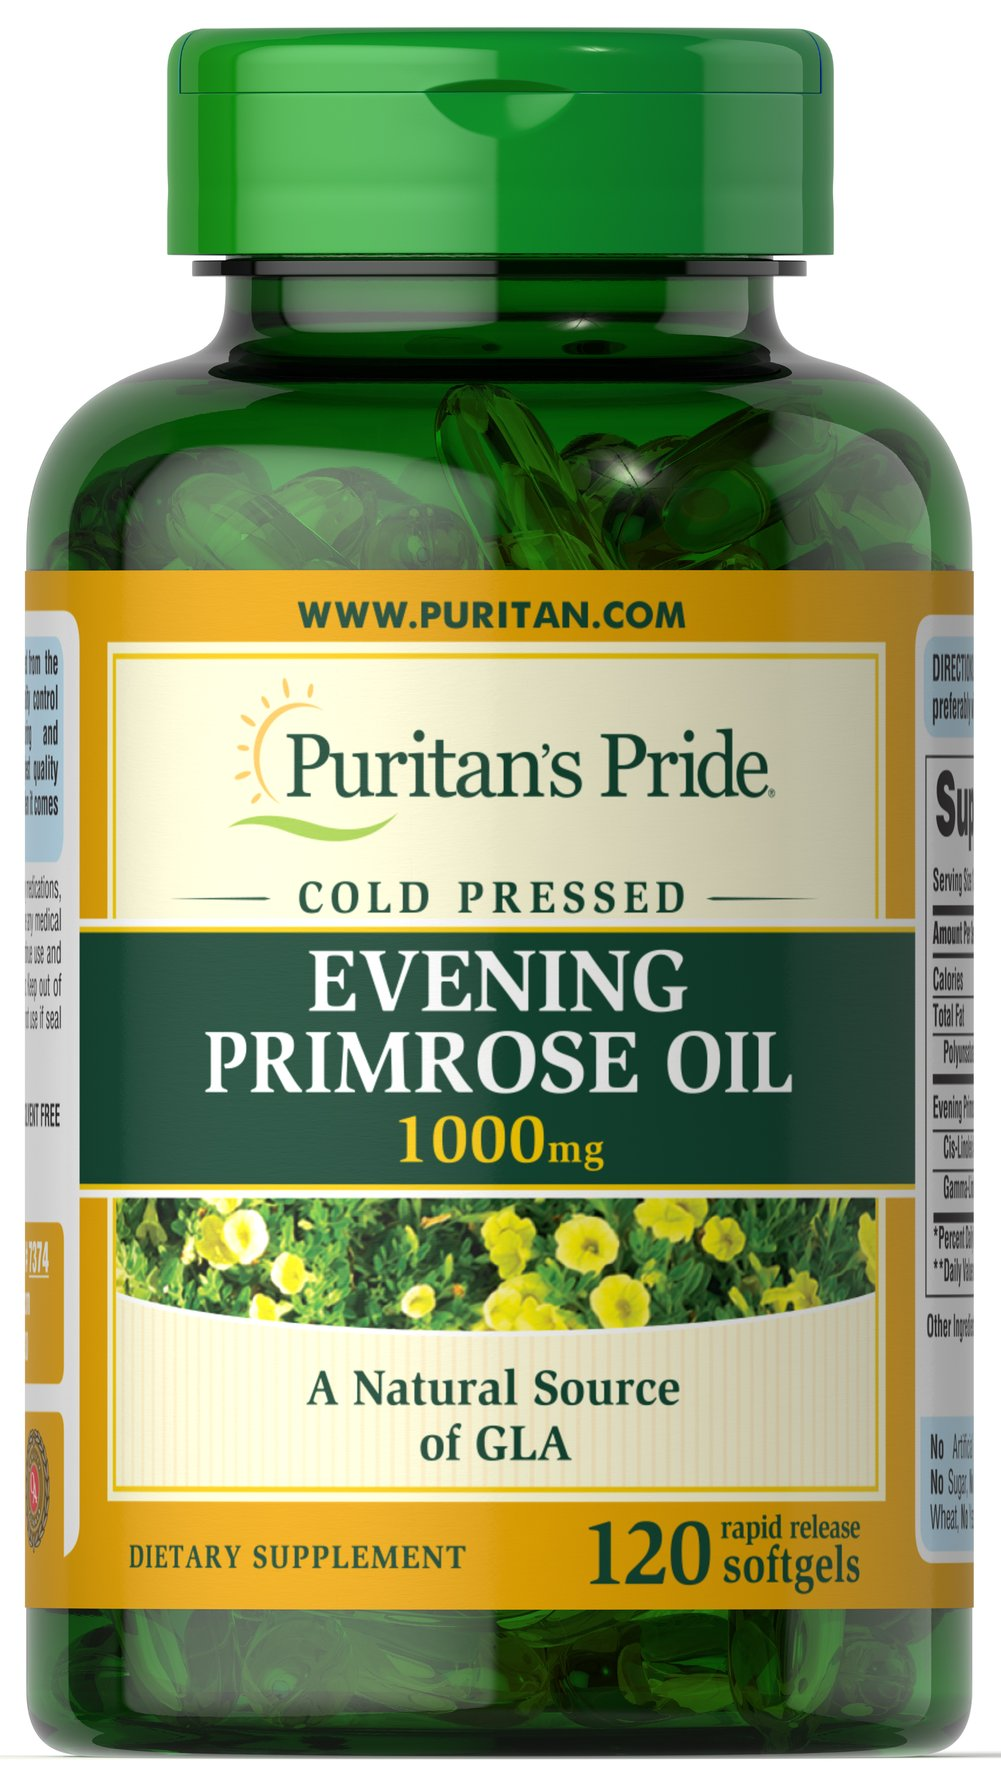 Evening Primrose Oil 1000 mg with GLA Thumbnail Alternate Bottle View